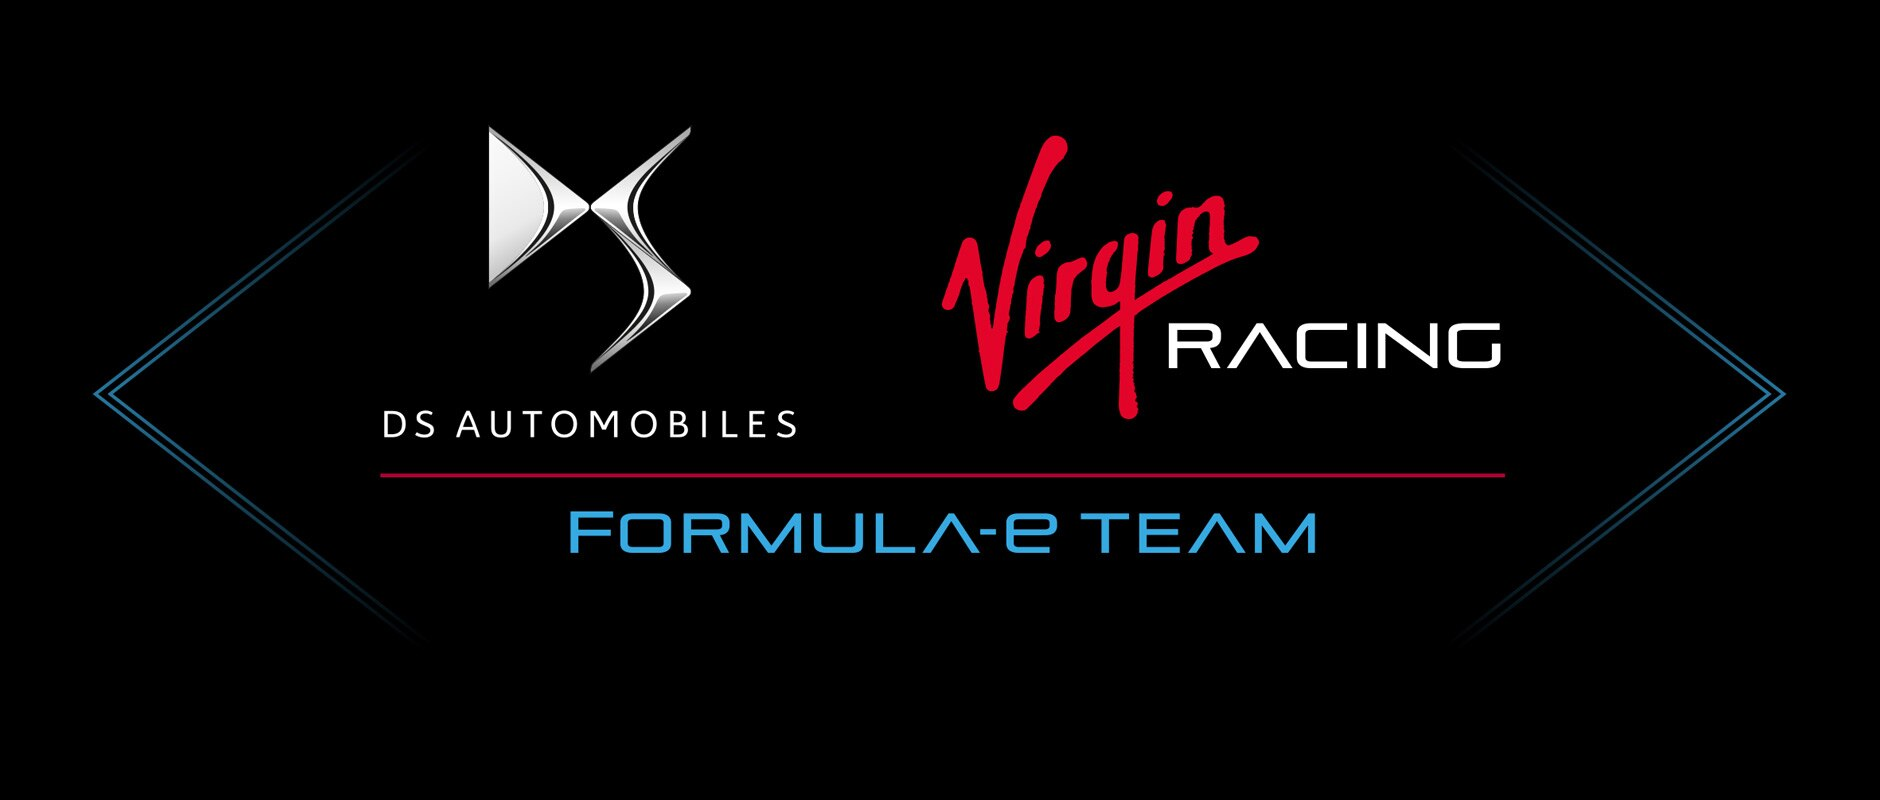 1880x800_DS_Virgin_Racing_4